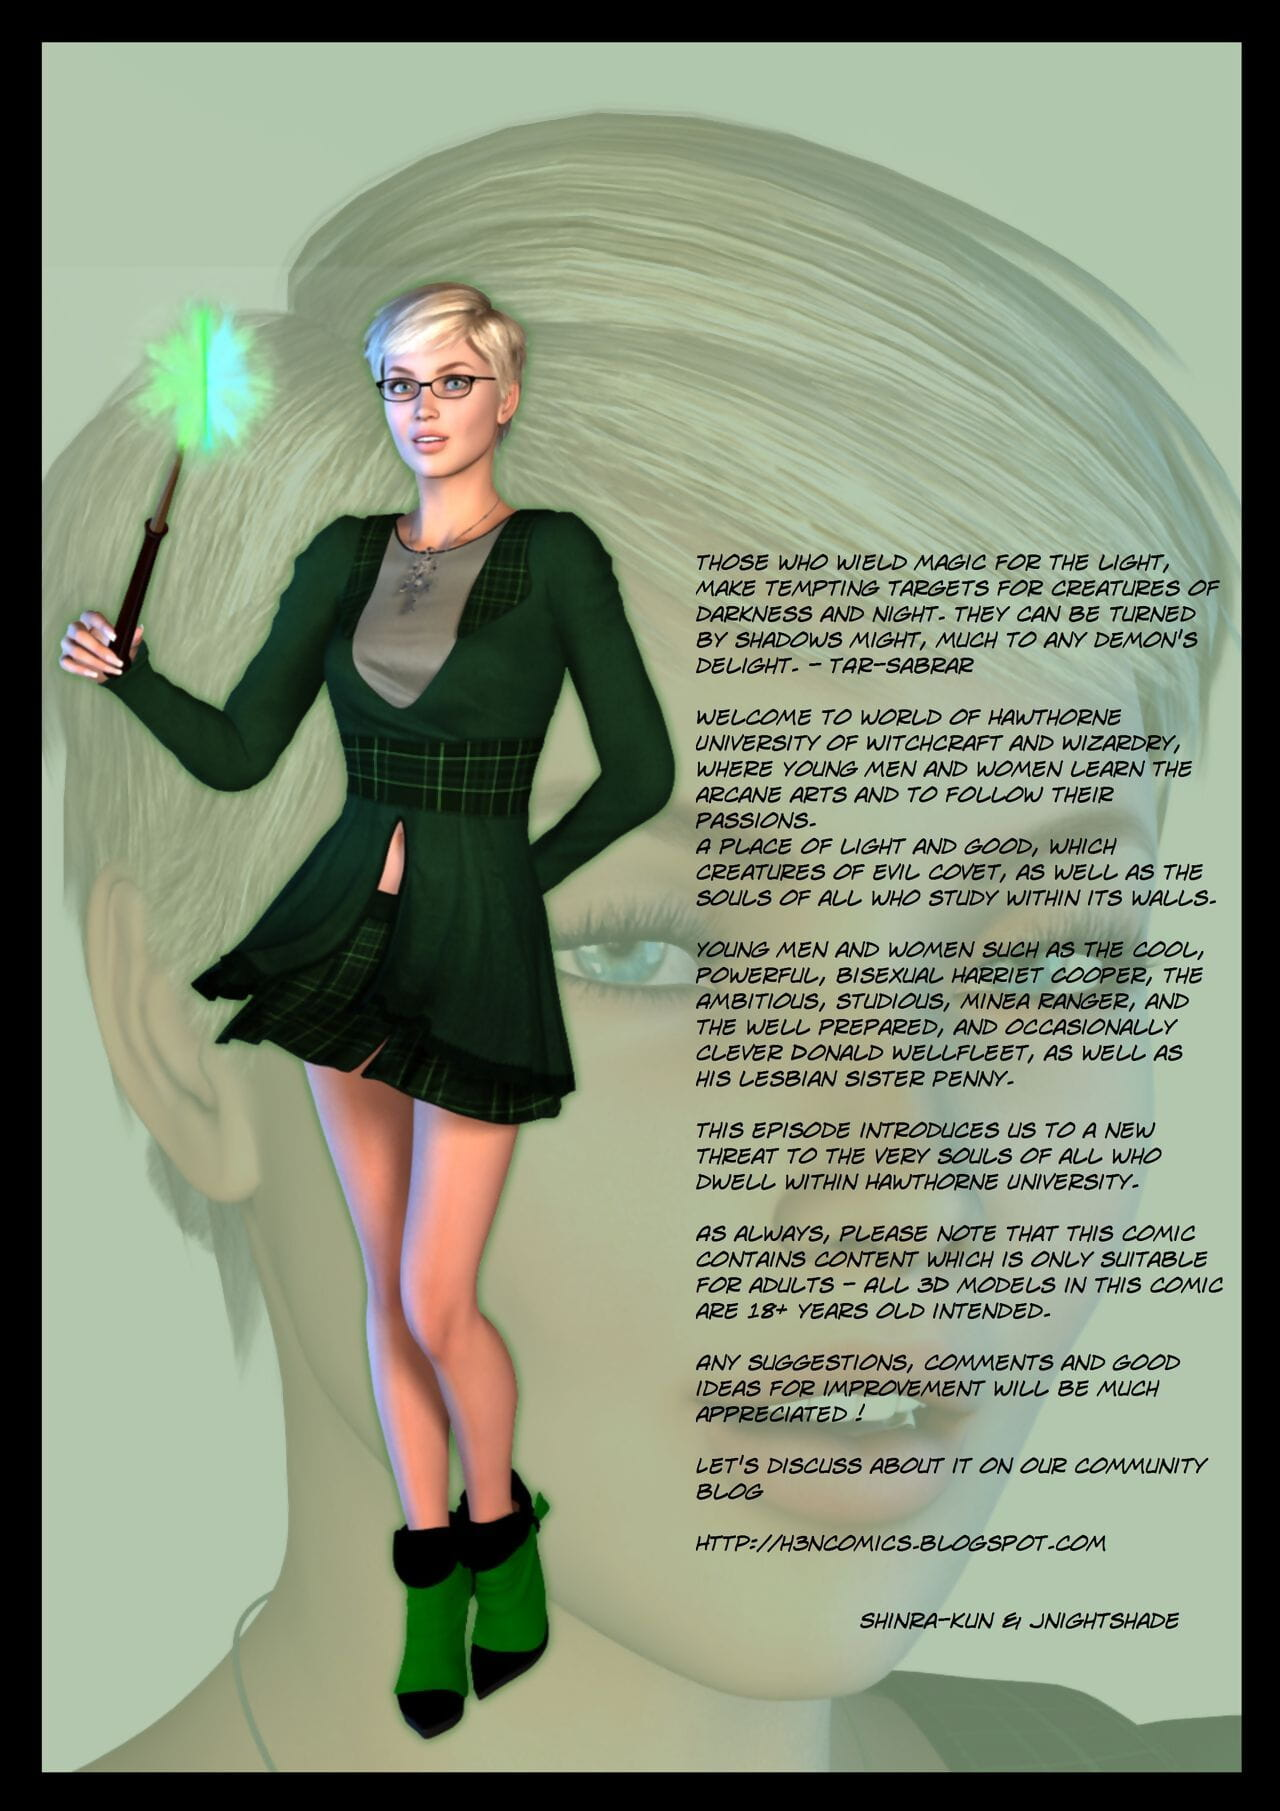 Shinra-kun Harriet Cooper Coupled with Put emphasize Wizards Bear the expense - Jump 1